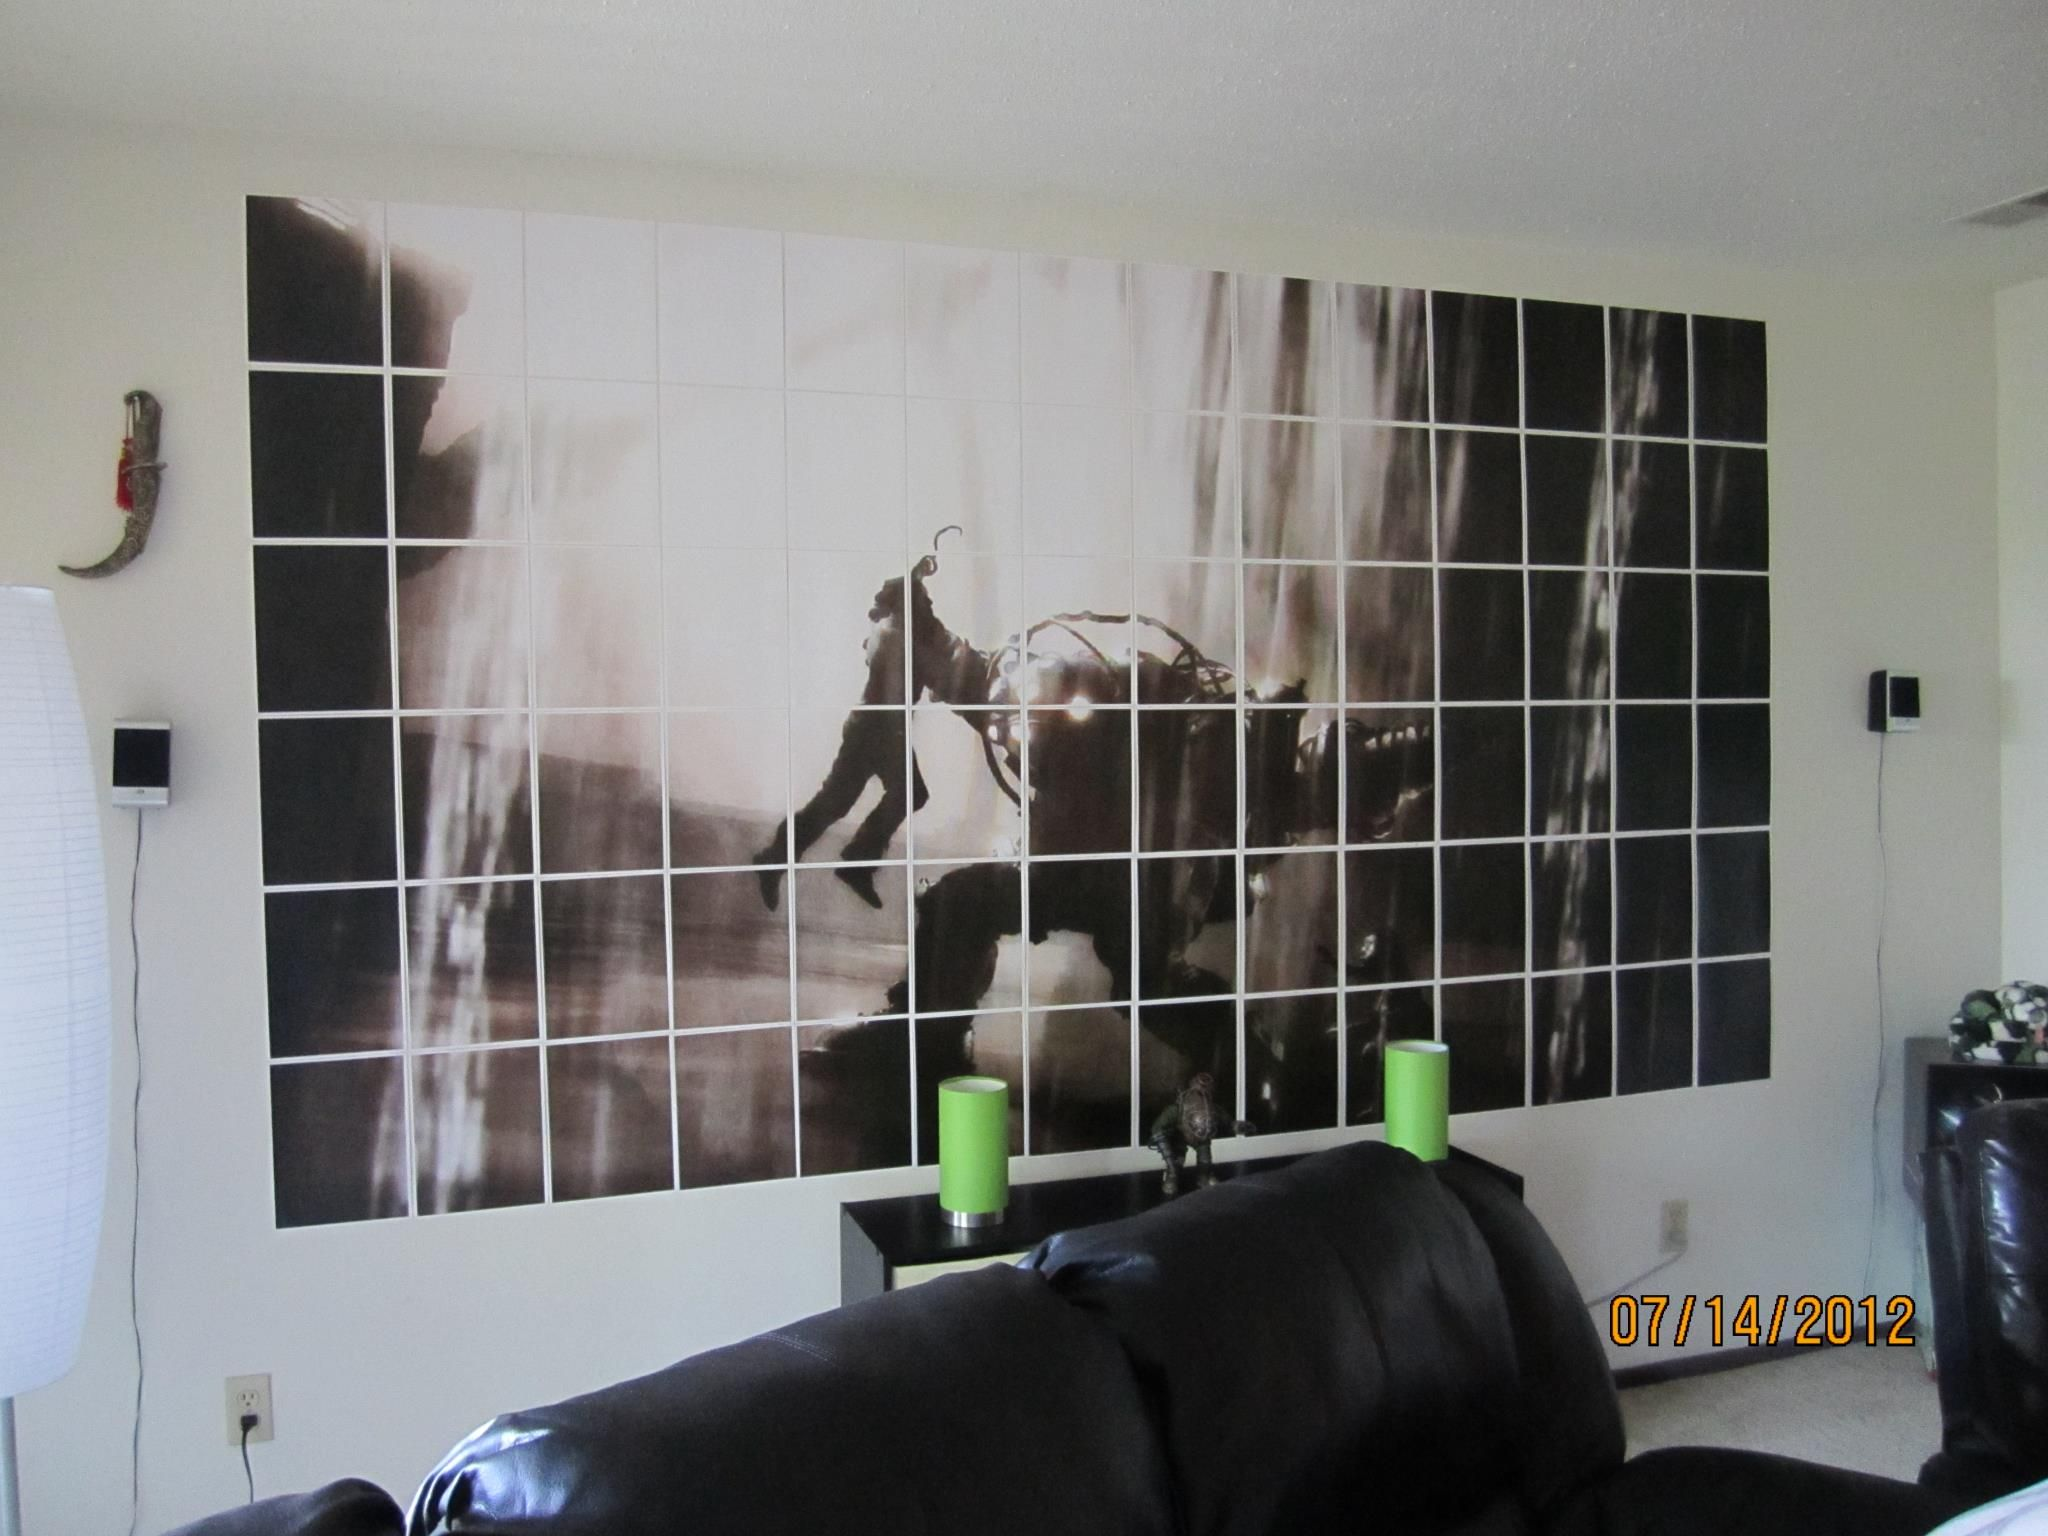 BioShock Big Daddy / Splicer / Little Sister Wall Art: They Said We  Couldnu0027t Paint Our Apartment Walls.so I Opted To Create Some Wall Art To Go  With Our ...